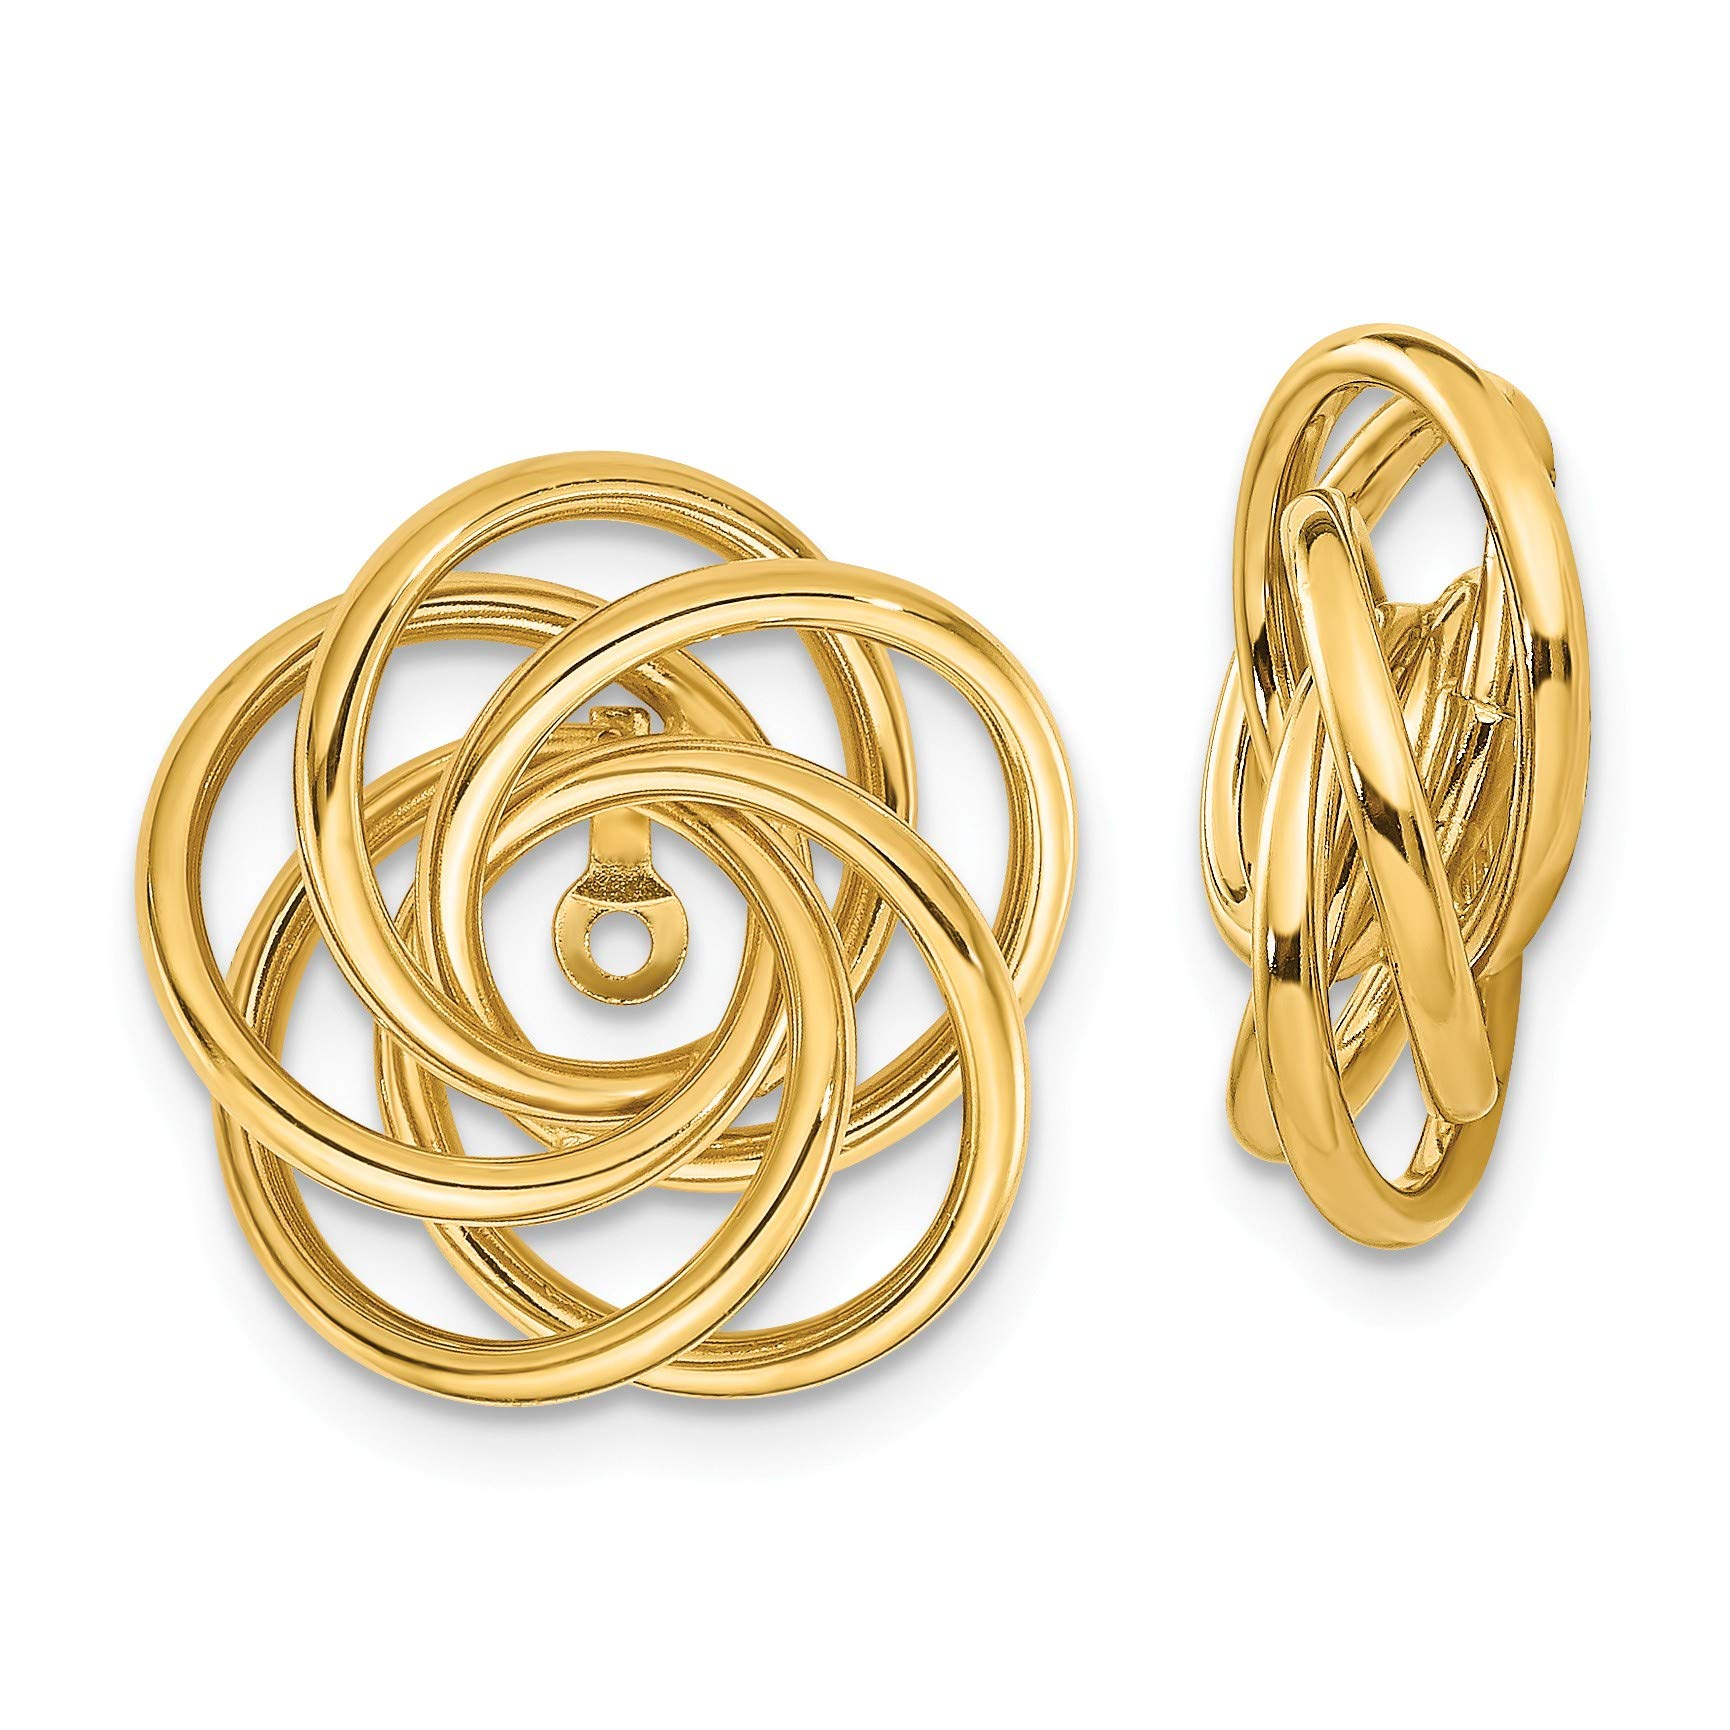 14k Polished Love Knot Earring Jackets in 14k Yellow Gold